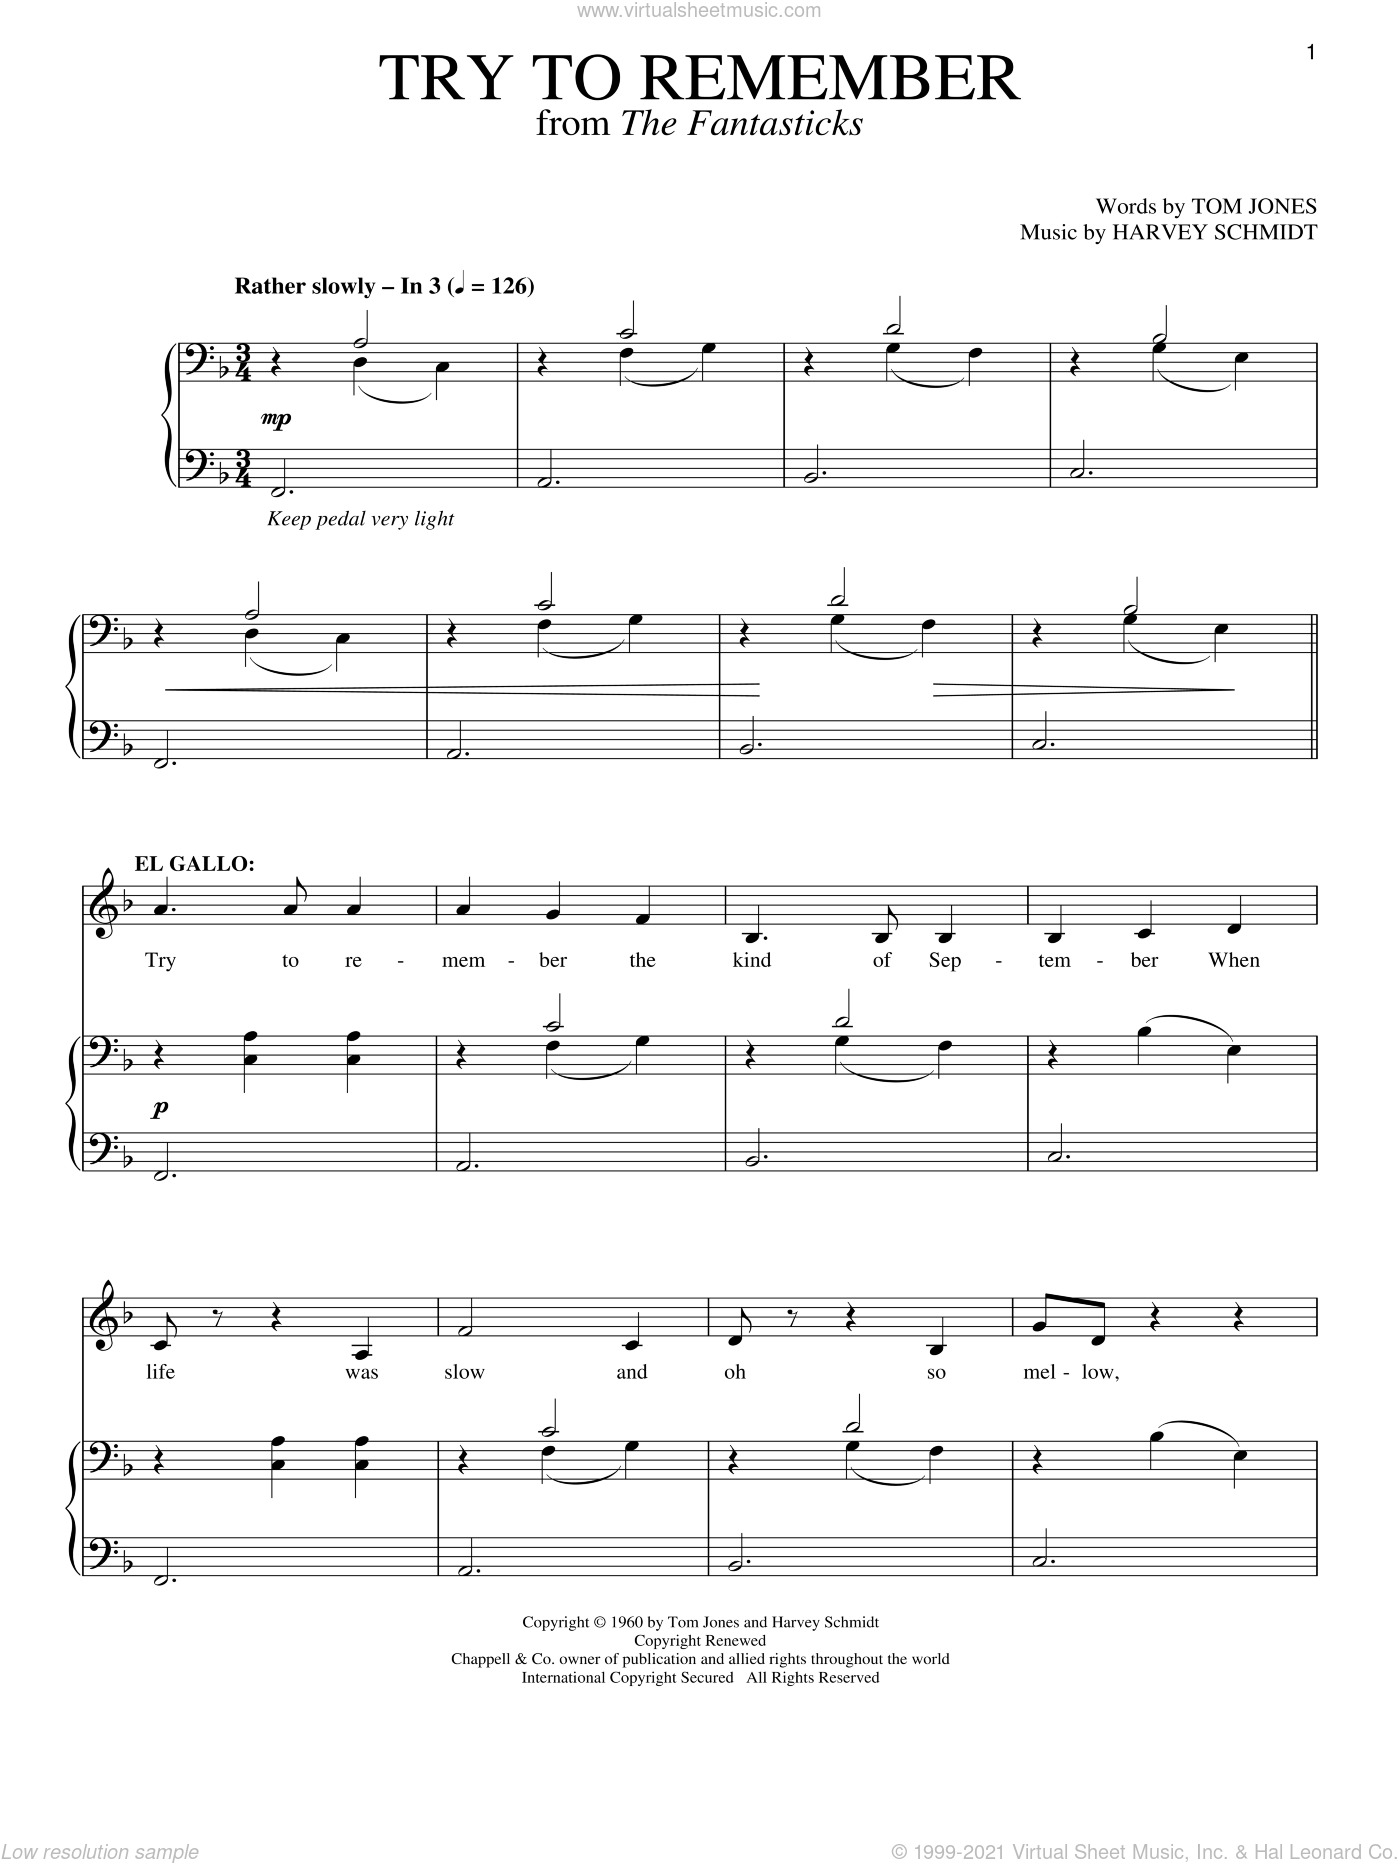 Try To Remember sheet music for voice and piano by Tom Jones